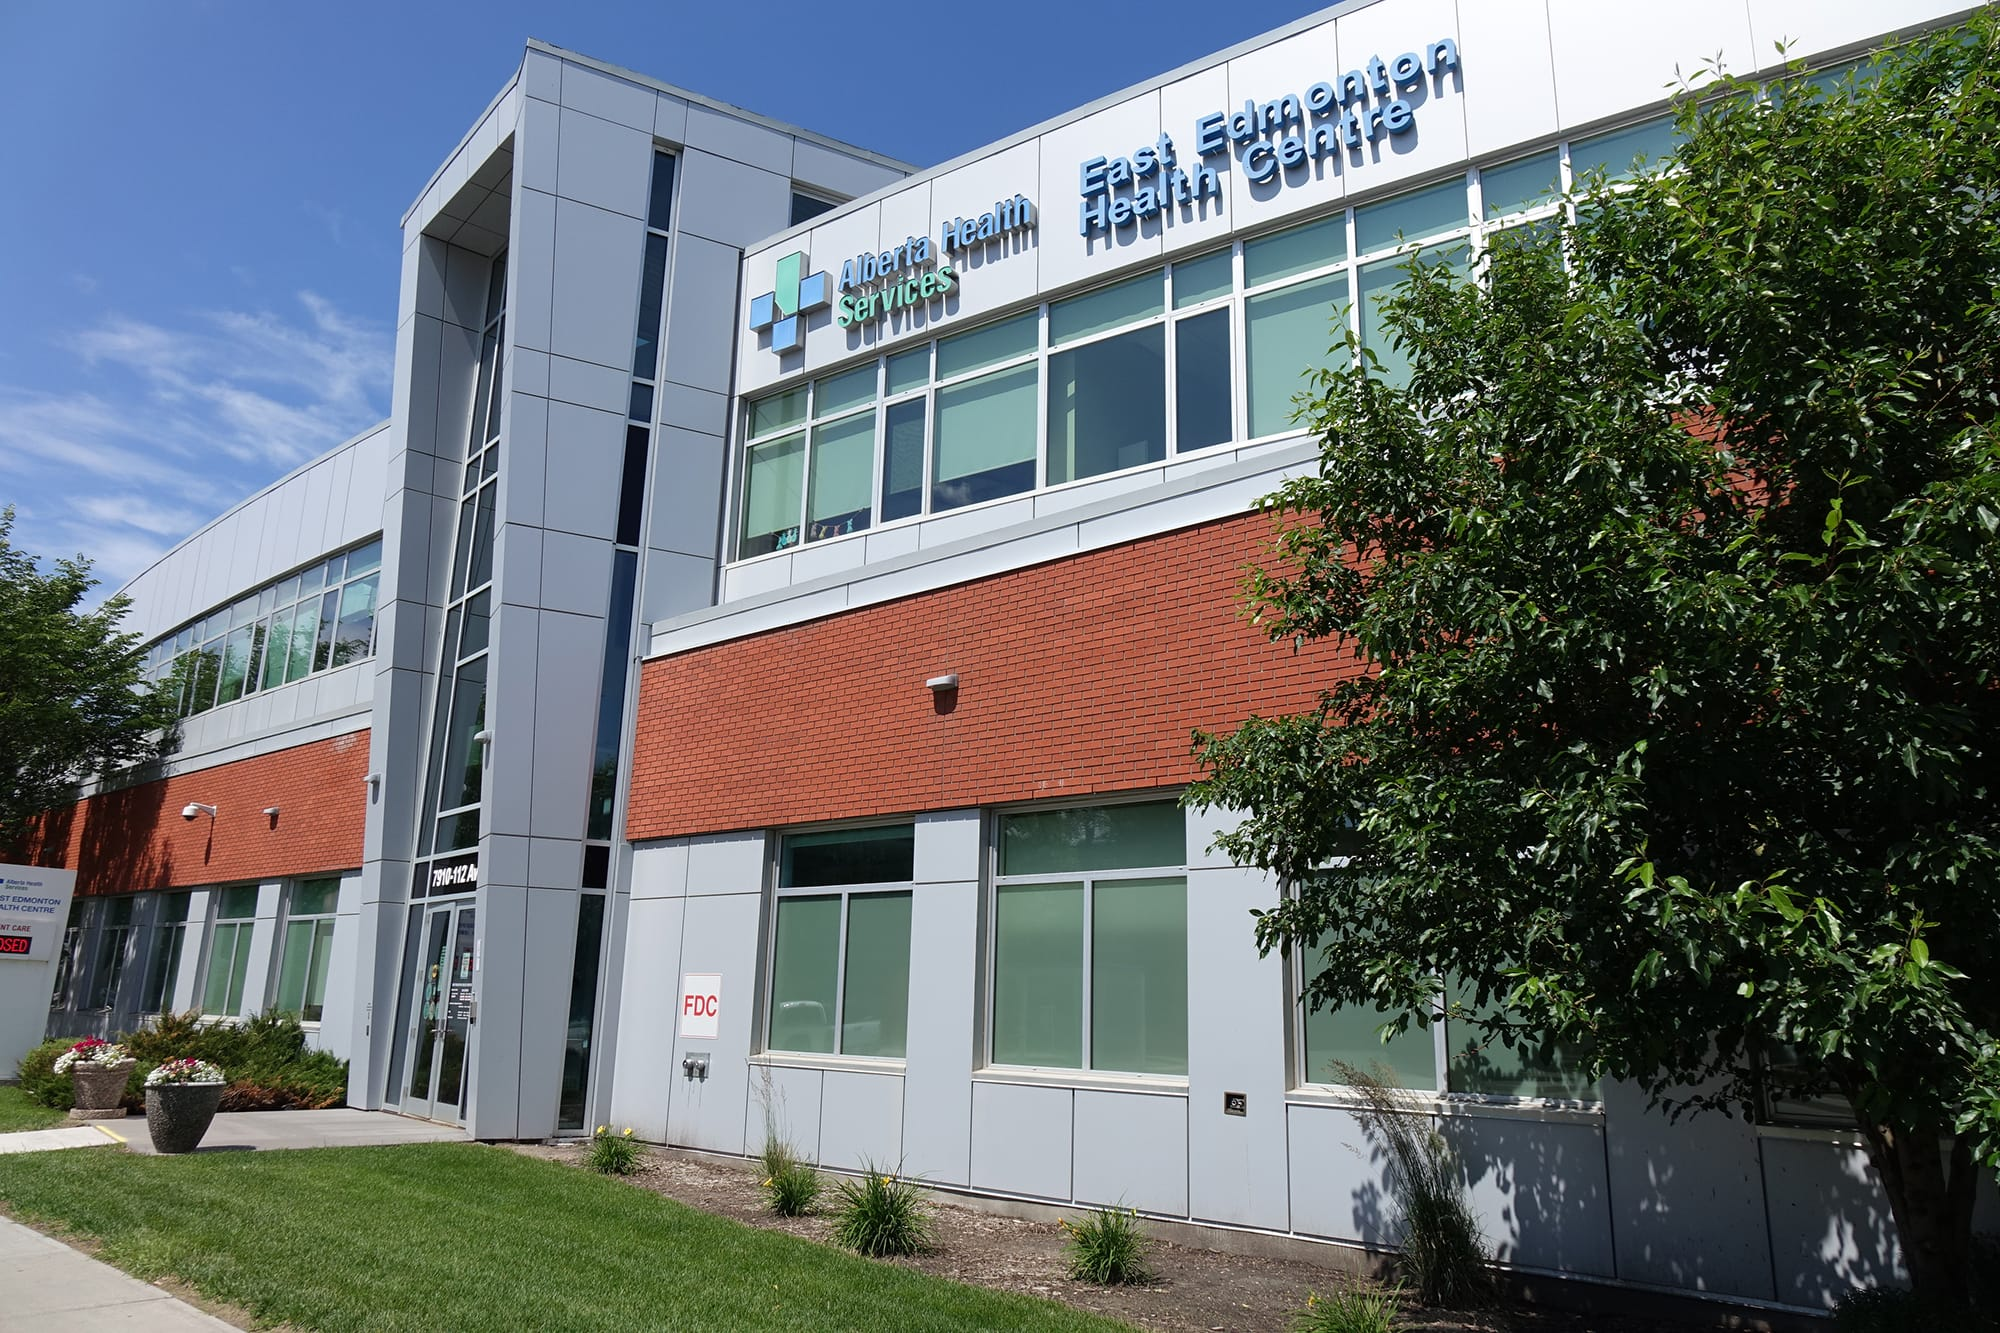 East Edmonton Health Care Centre exterior looking up with signage